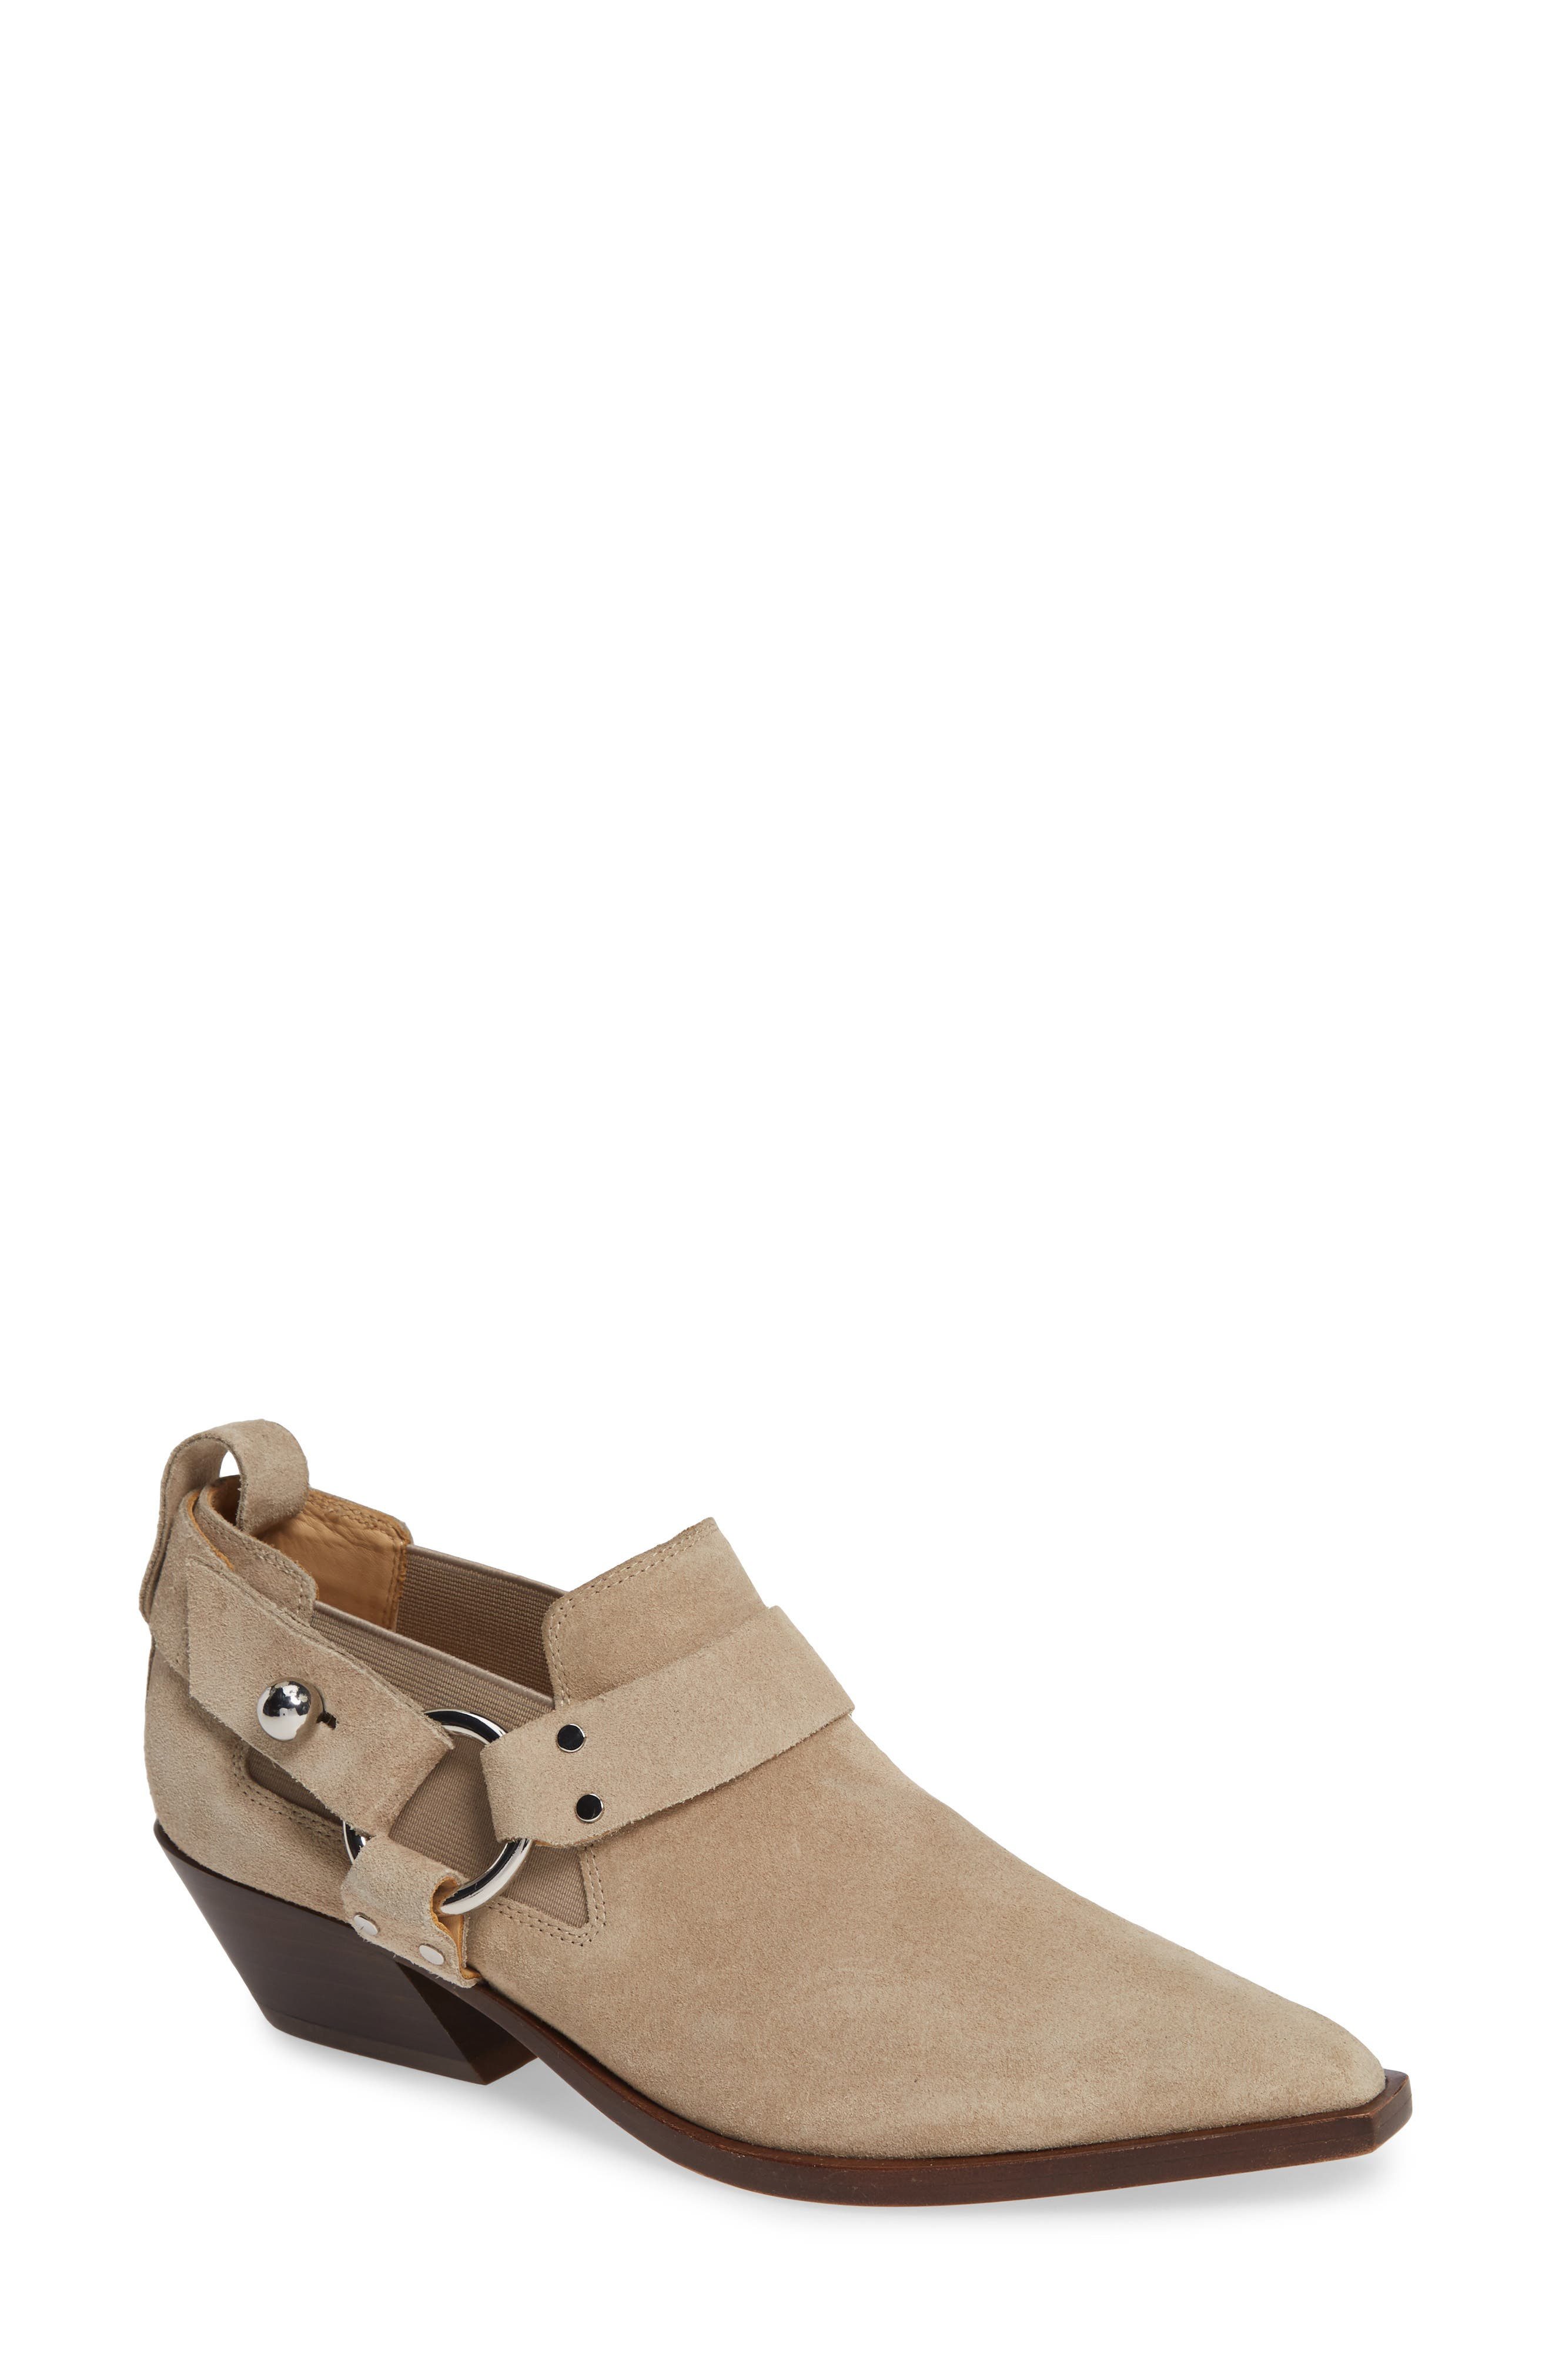 Rag & Bone Harness Bootie - Beige